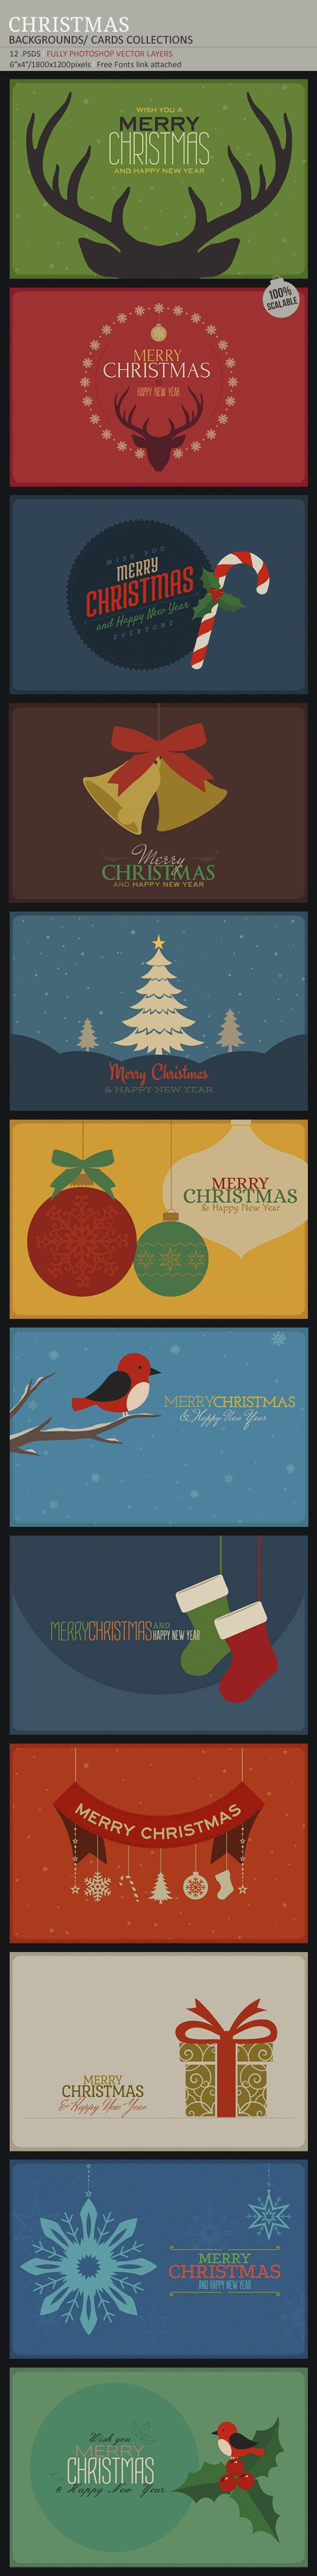 Christmas by creative artx , via Behance